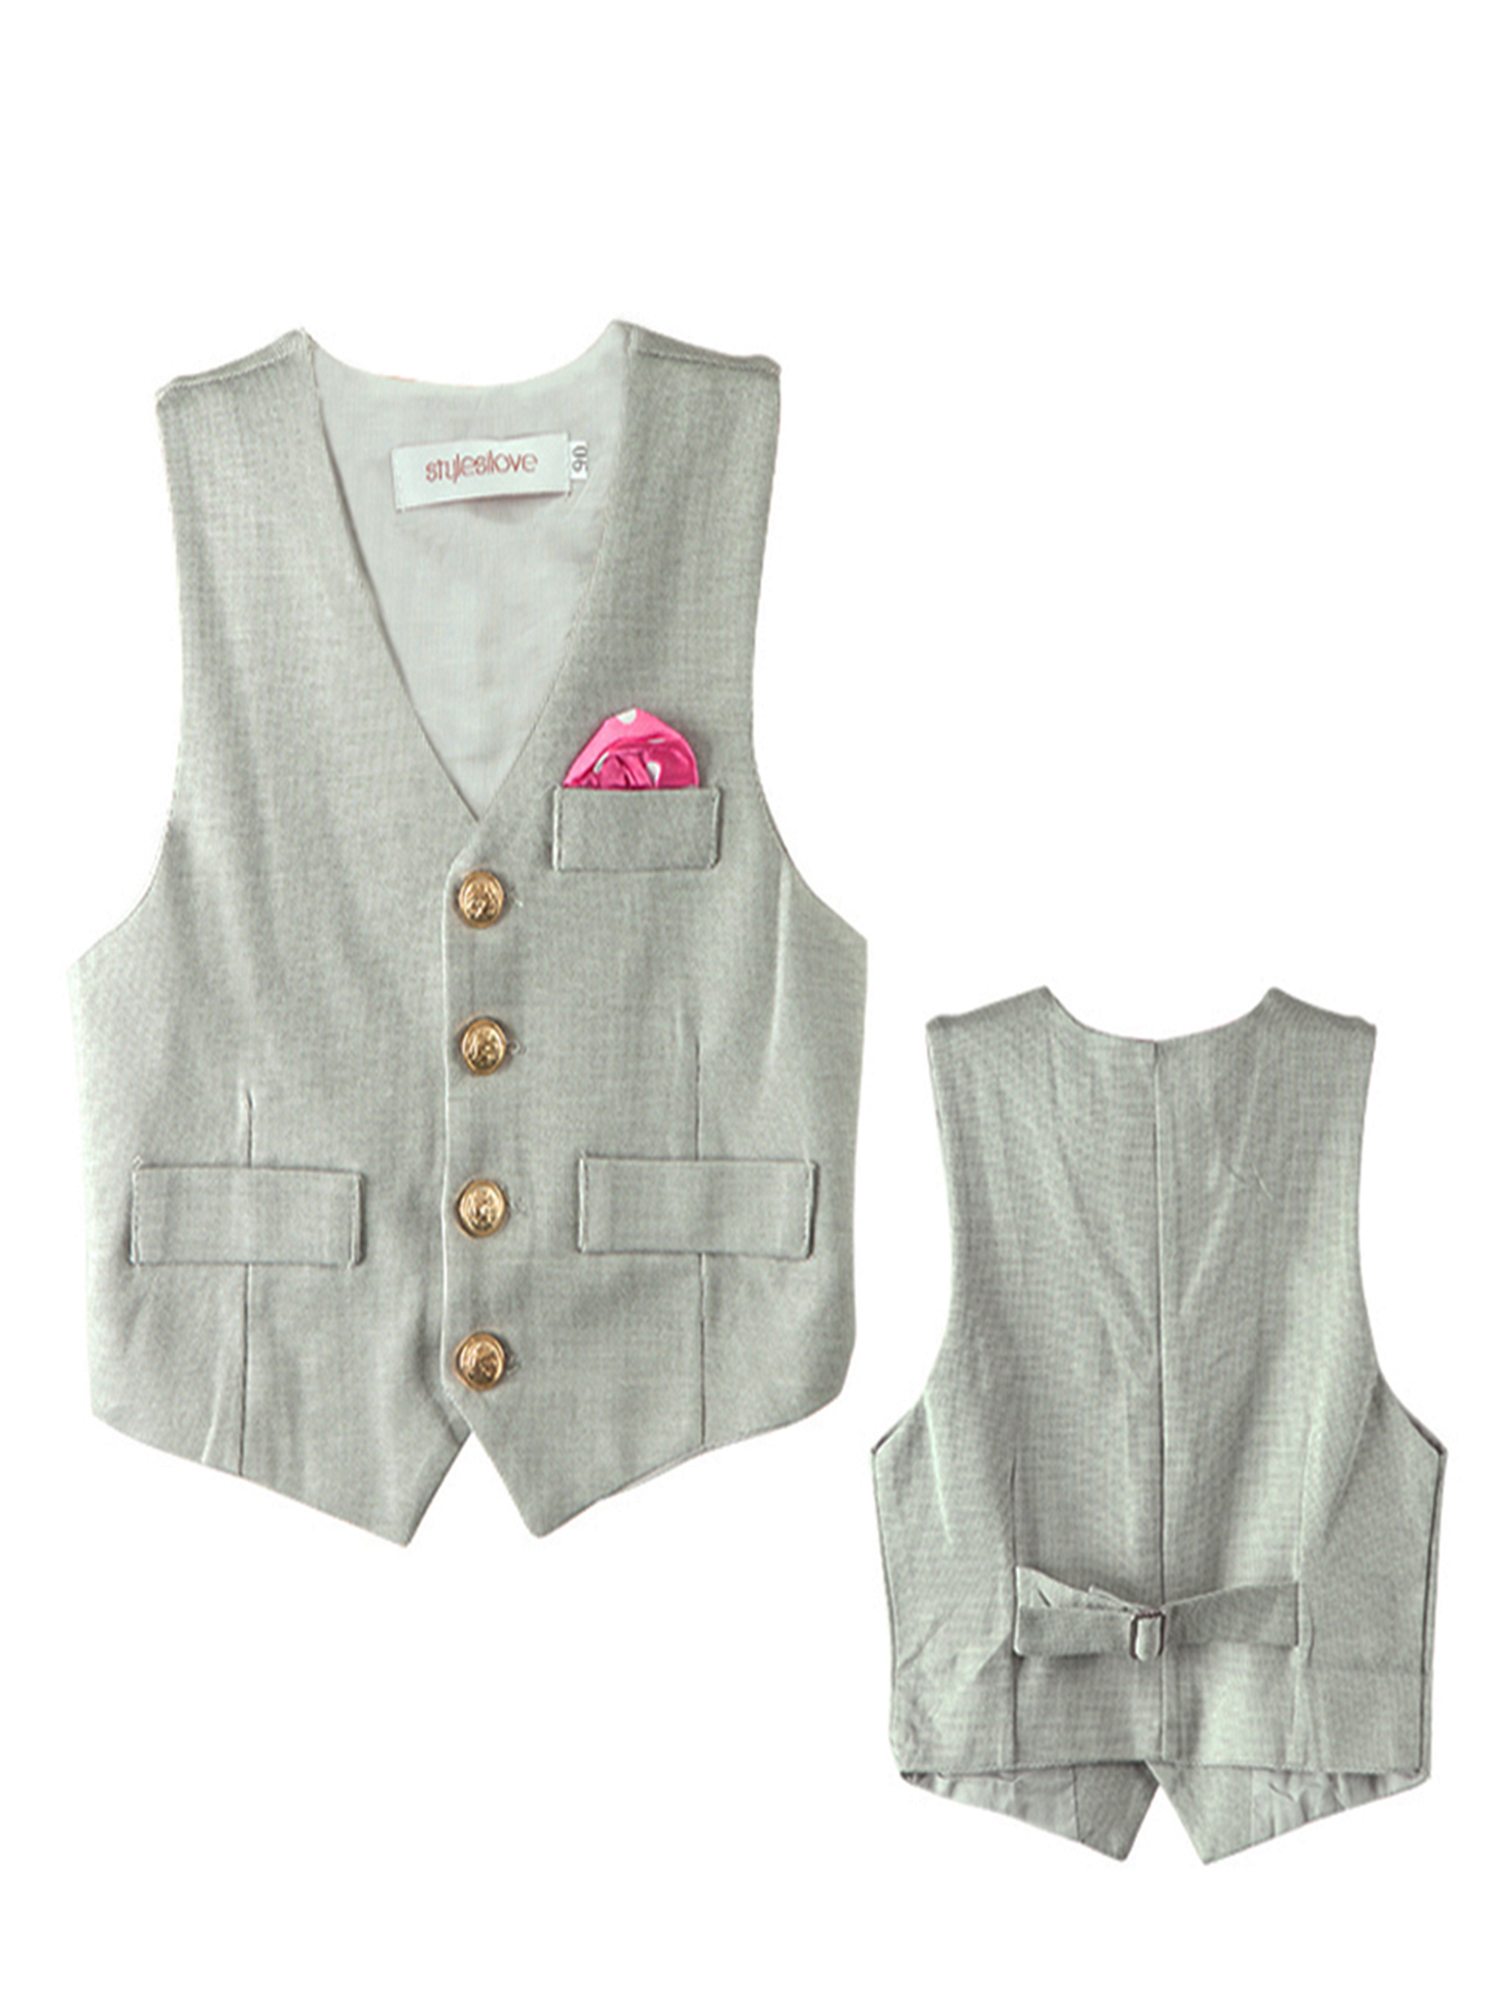 Stylesilove Baby Boy Faux Tie Gold Buttons Tuxedo Vest (4-5 Years, Grey)